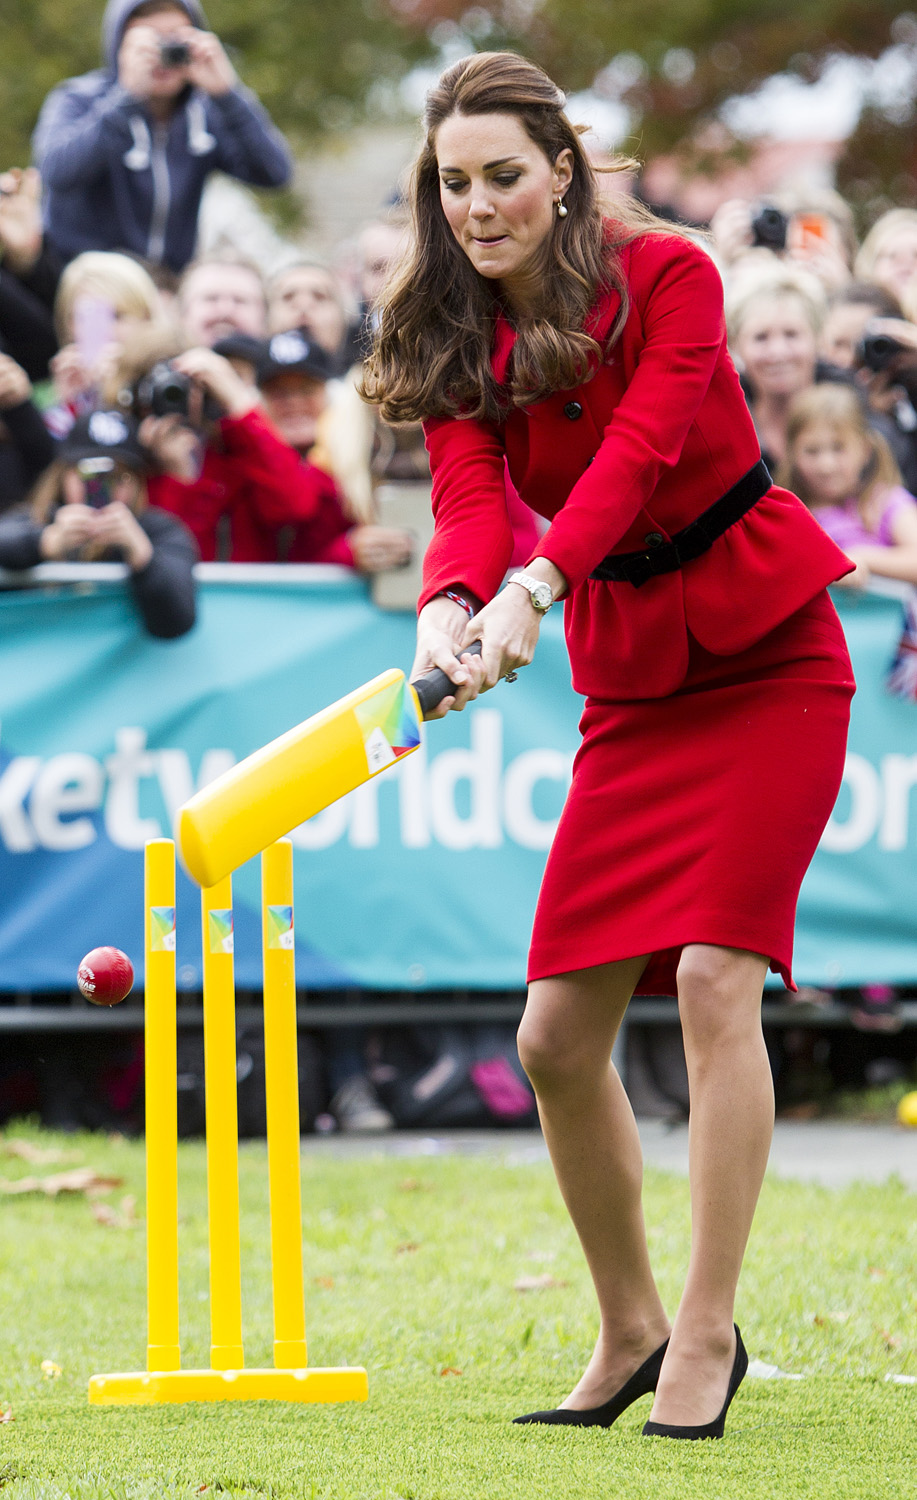 <strong>Batter Up!</strong>Catherine, Duchess of Cambridge plays cricket in Latimer Square Gardens on April 14, 2014 in Christchurch, New Zealand.